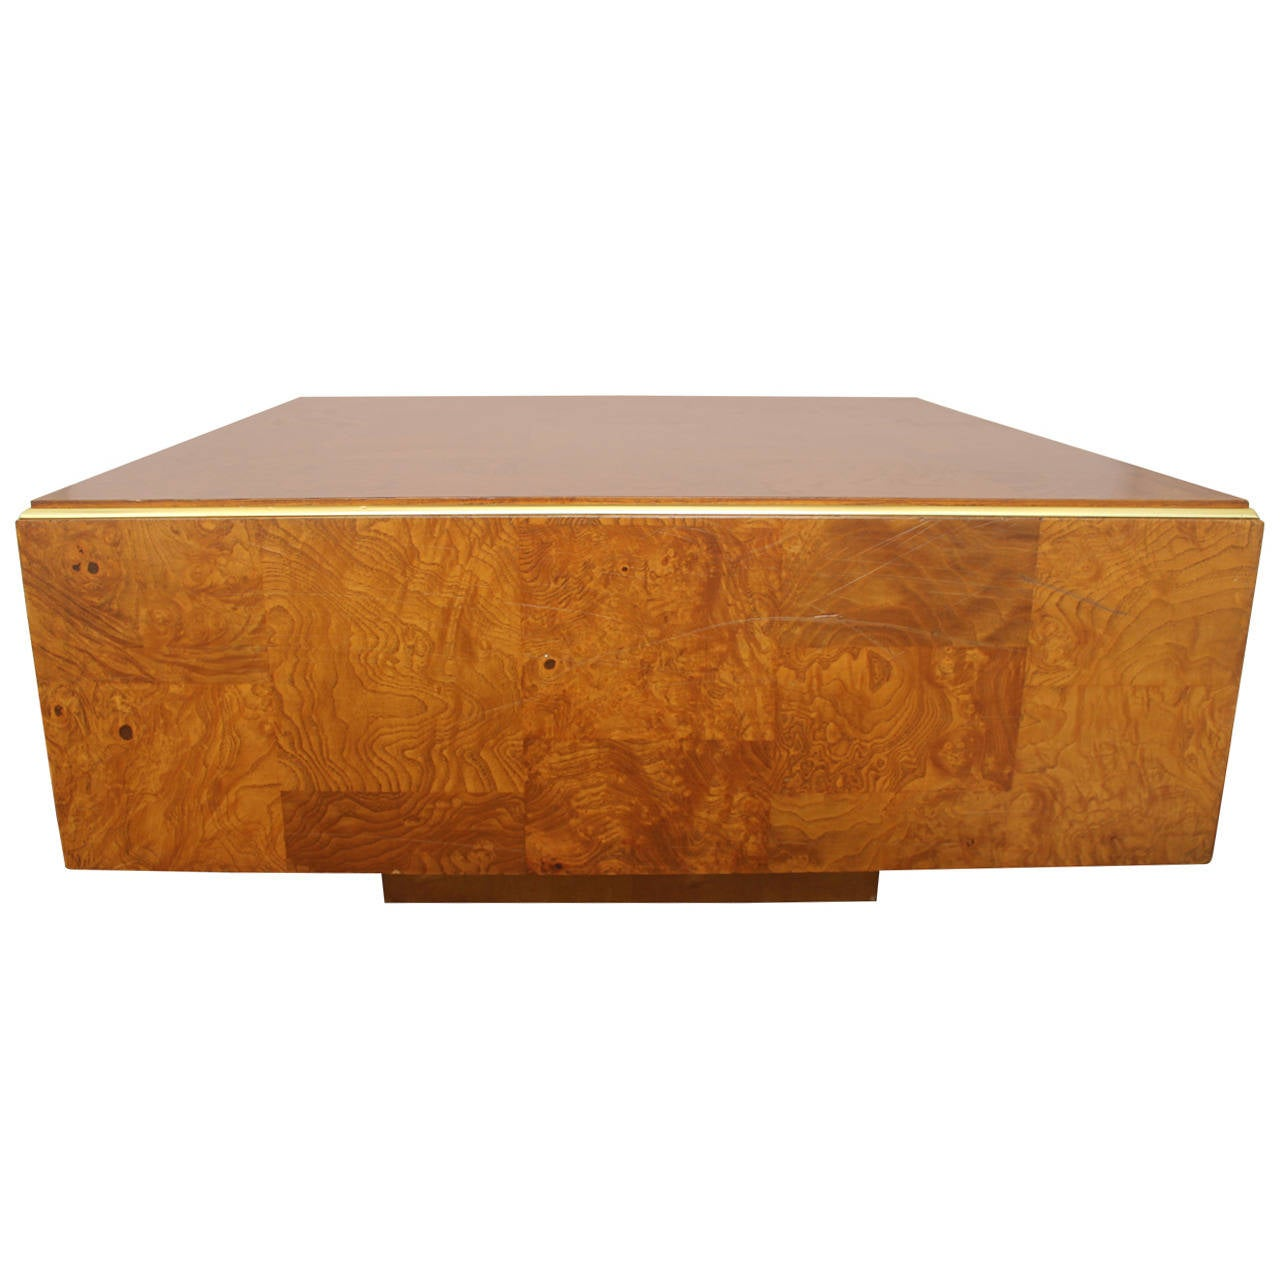 Burl Wood Milo Baughman Square Coffee Table With Brass Trim Circa 1970s At 1stdibs